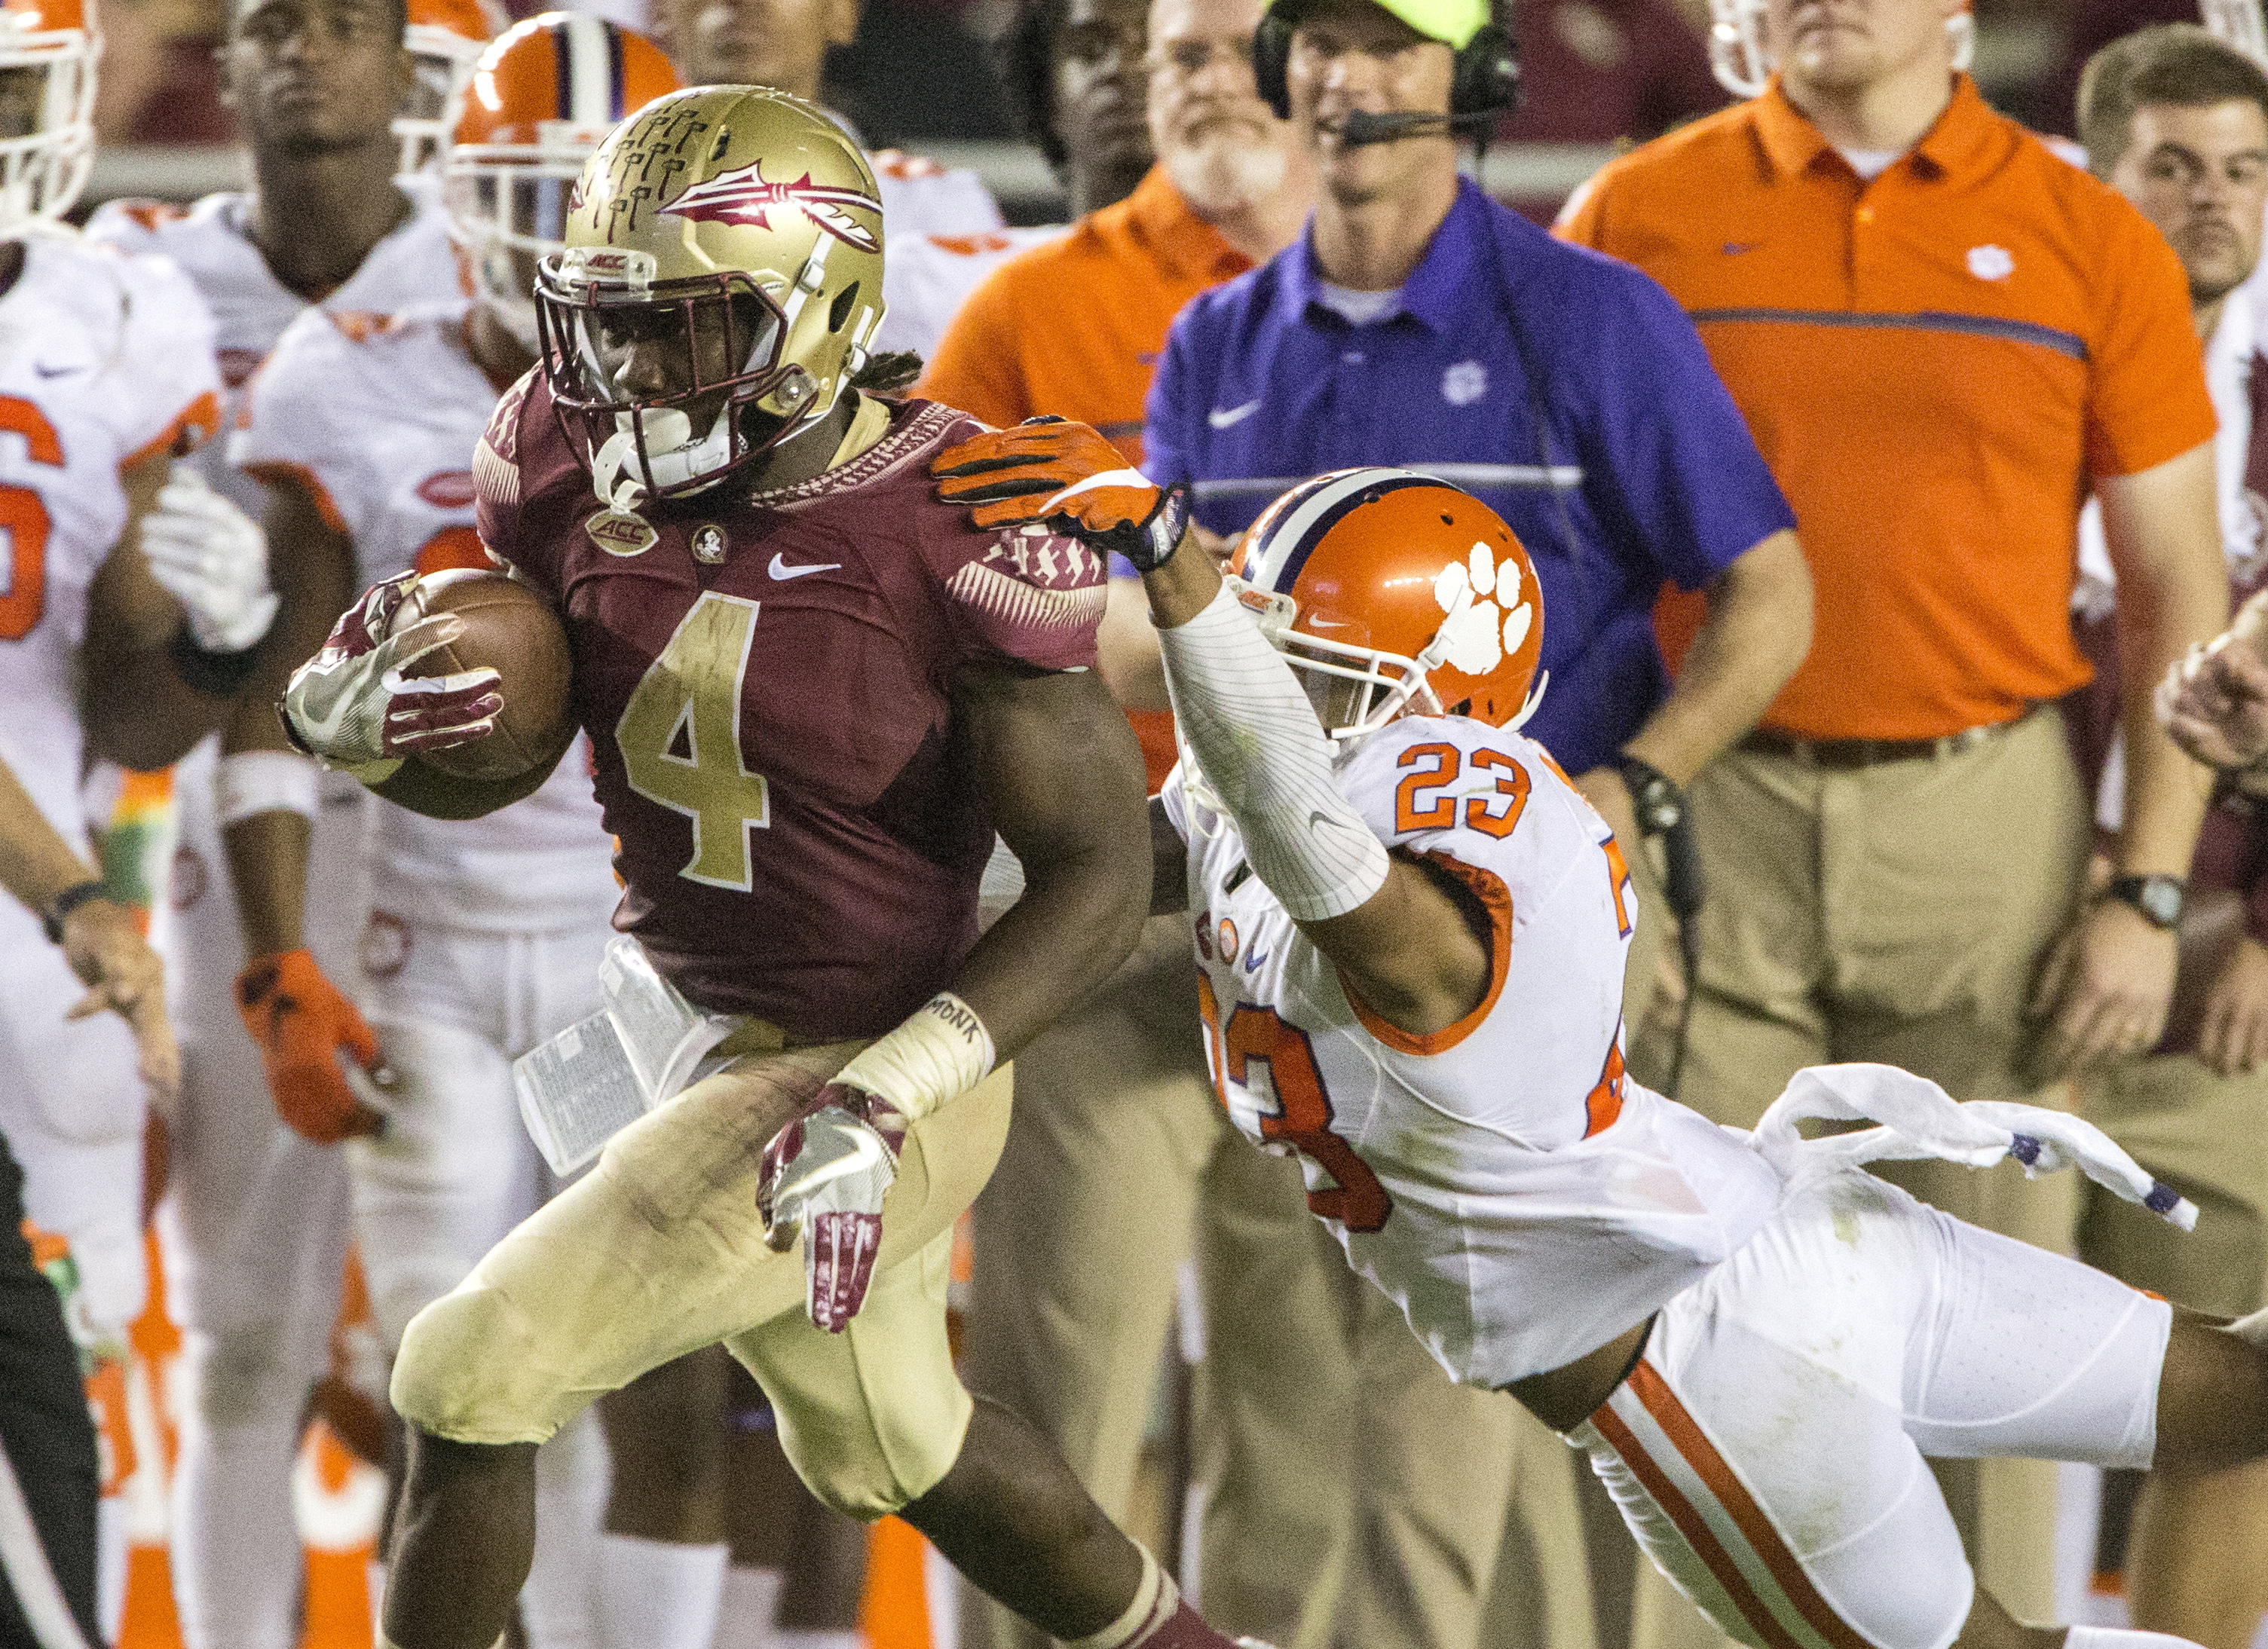 FILE - In this Saturday, Oct. 29, 2016, file photo, Florida State running back Dalvin Cook (4) sheds Clemson safety Van Smith during a 70-yard touchdown run in the second half of an NCAA college football game in Tallahassee, Fla. Slowing down Cook is Flor